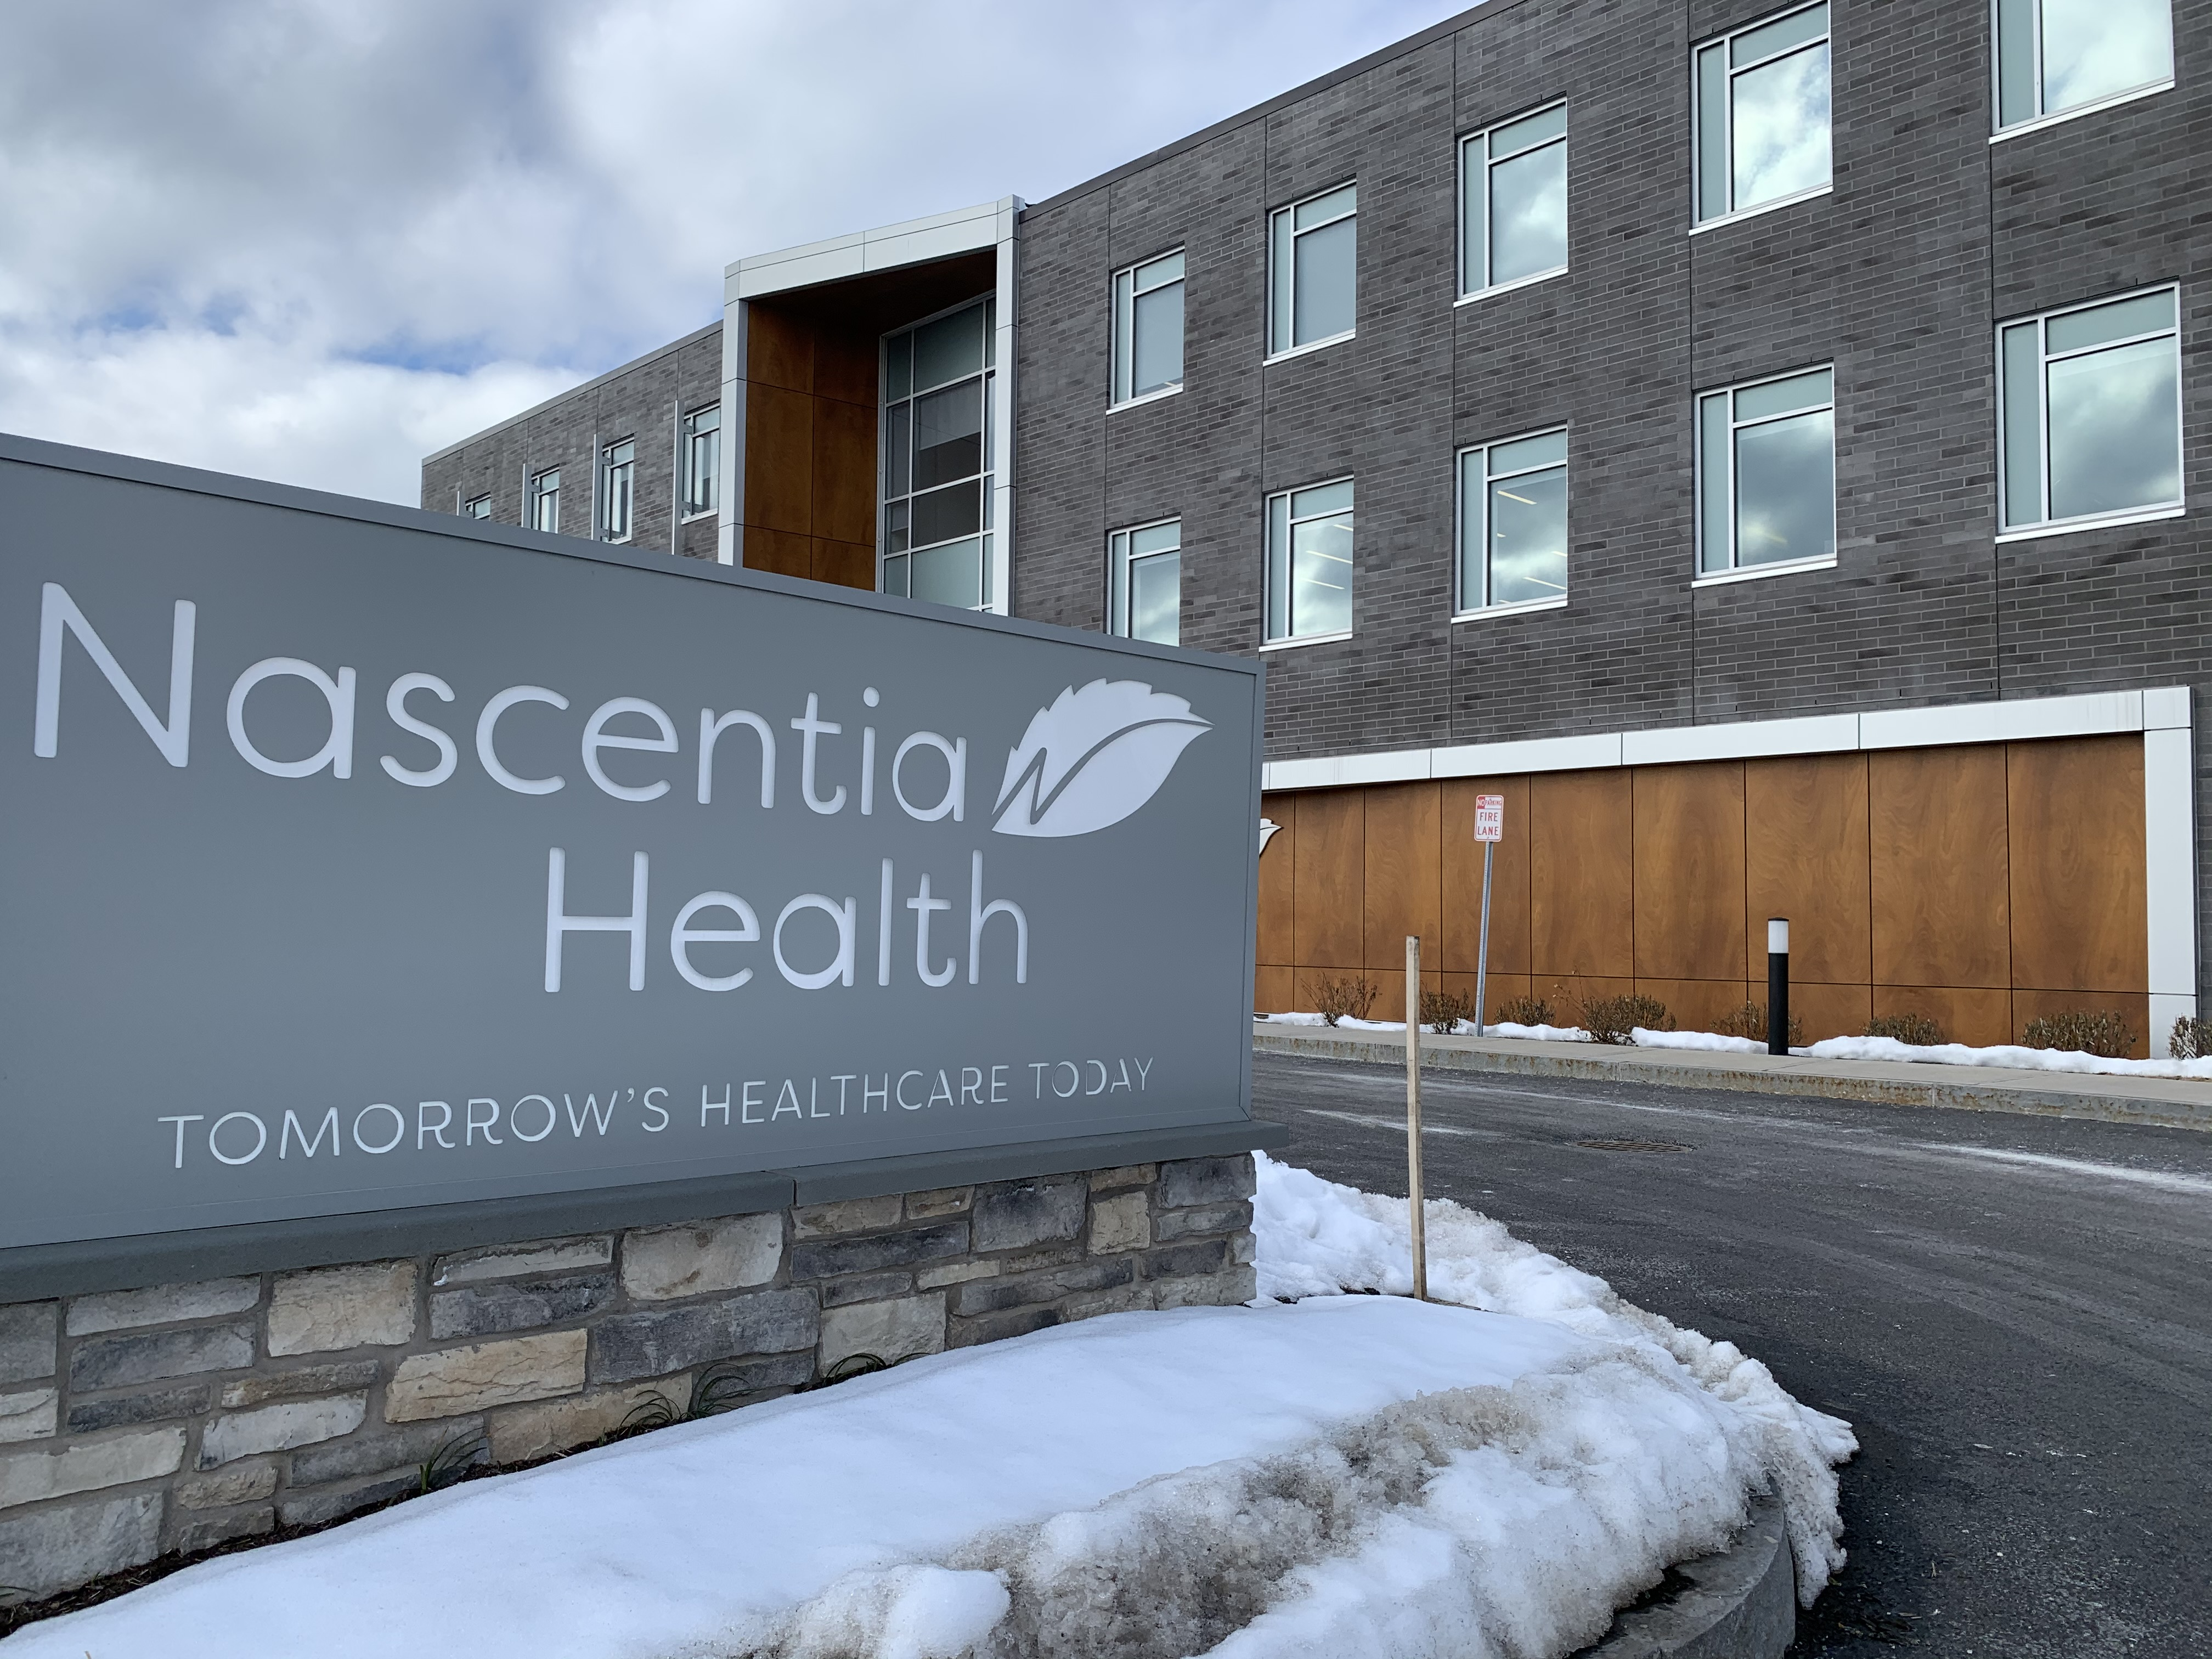 Medicaid cuts cause 71 layoffs at Syracuse-based Nascentia Health, company says